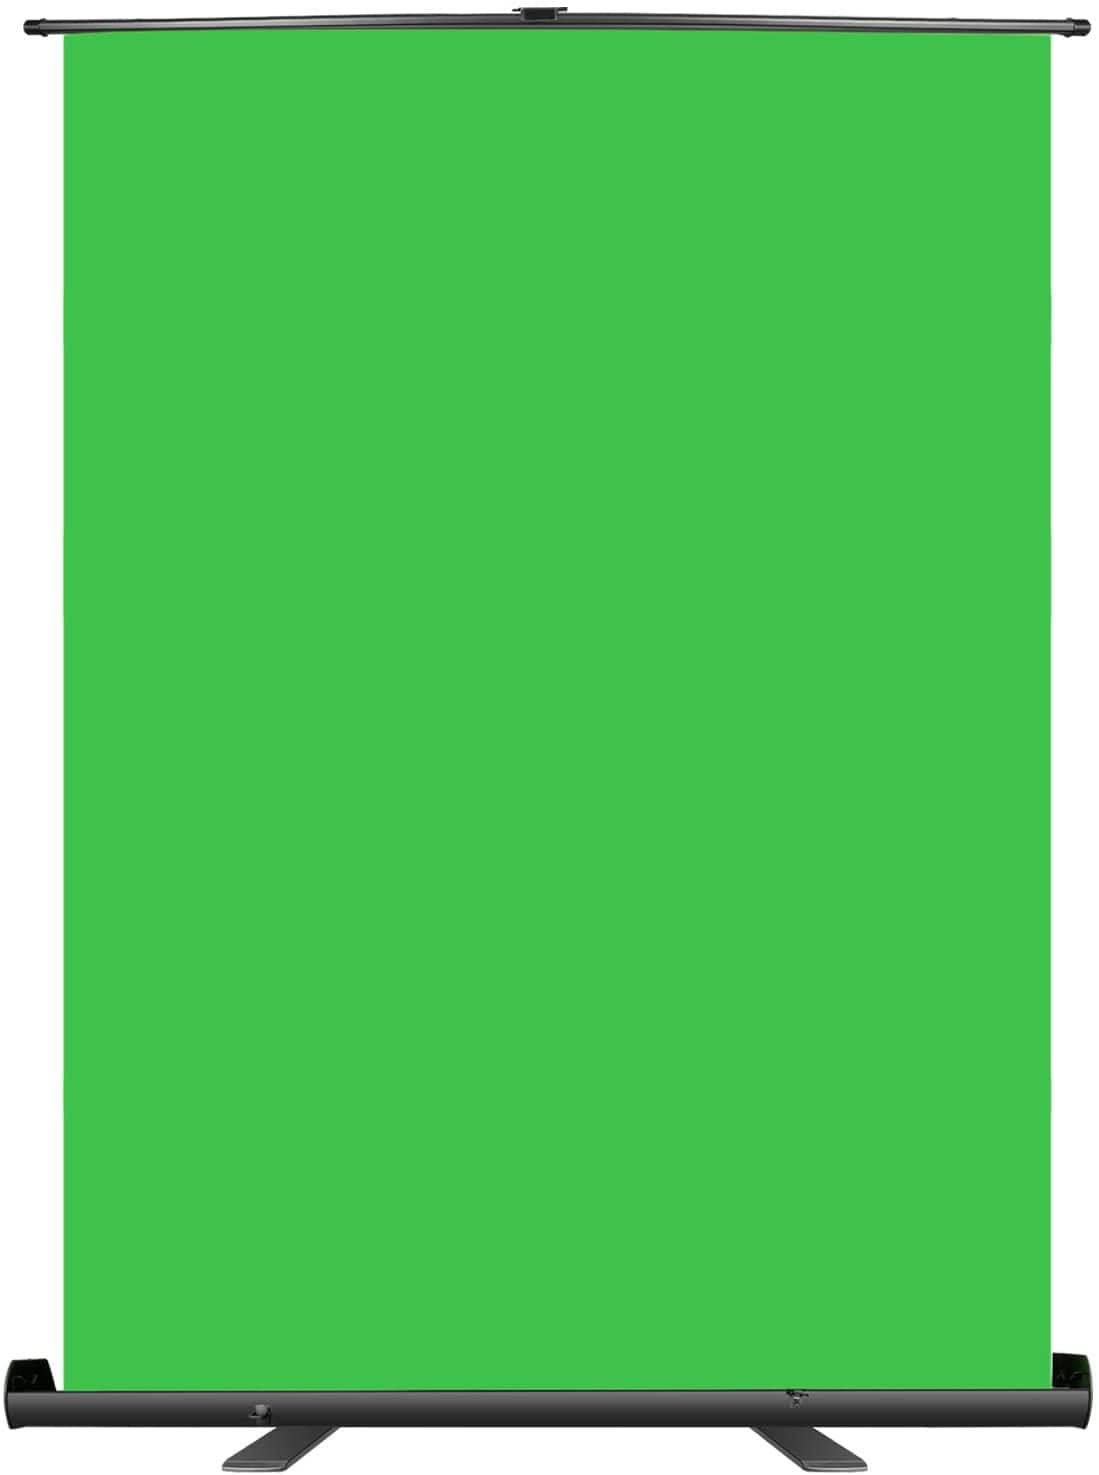 Neewer 148x180cm Pull-up Green Screen - $98.57 + Free Shipping with PRIME